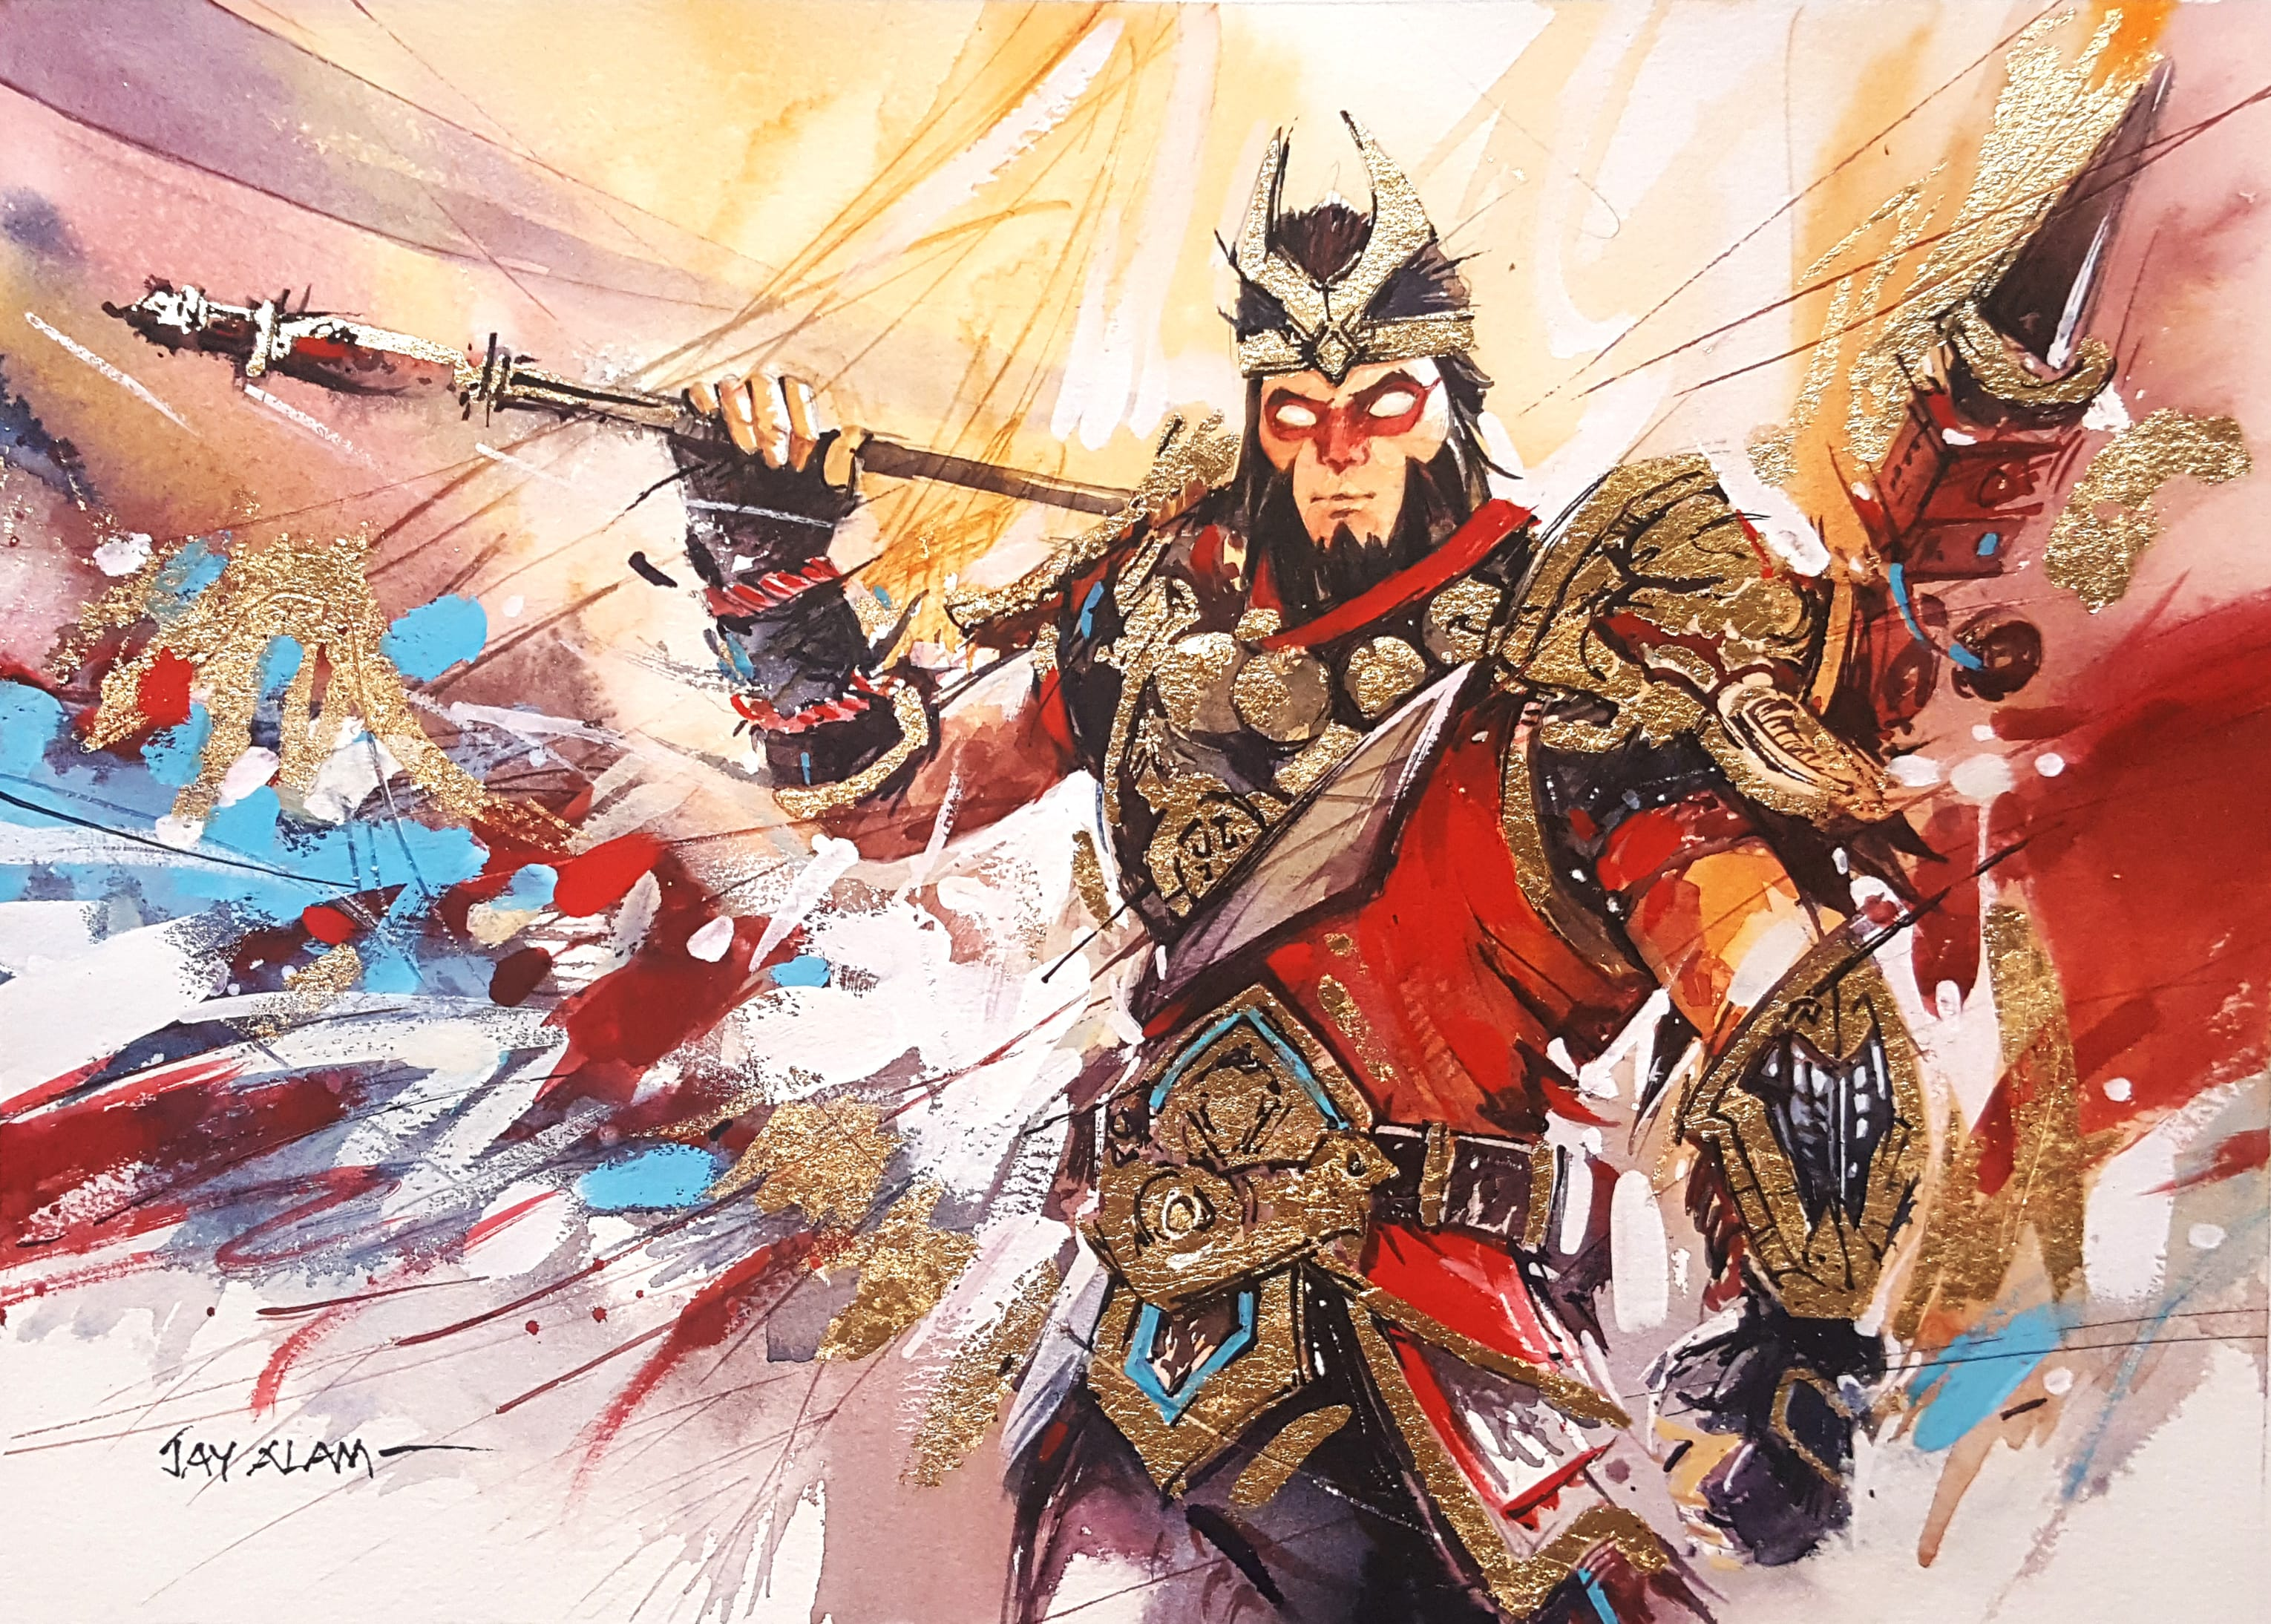 3060x2188 Fortnite Wukong Watercolour Painting #4189 Wallpapers and Free Stock ...